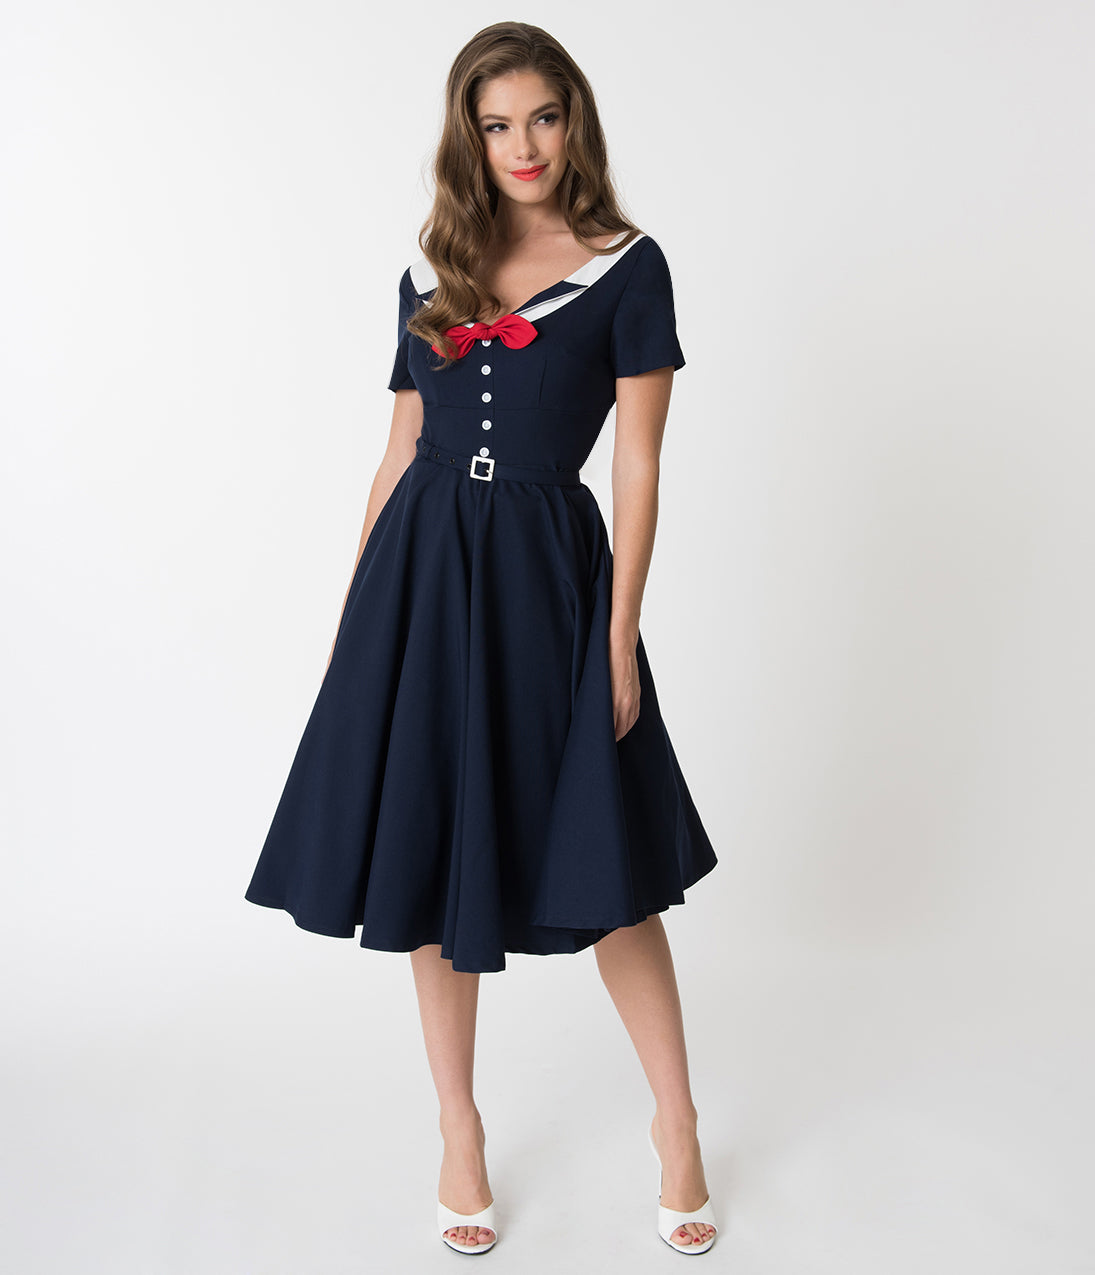 Sailor Dresses, Nautical Dress, Pin Up & WW2 Dresses Glamour Bunny Navy Blue Audrey Short Sleeve Swing Dress $142.00 AT vintagedancer.com